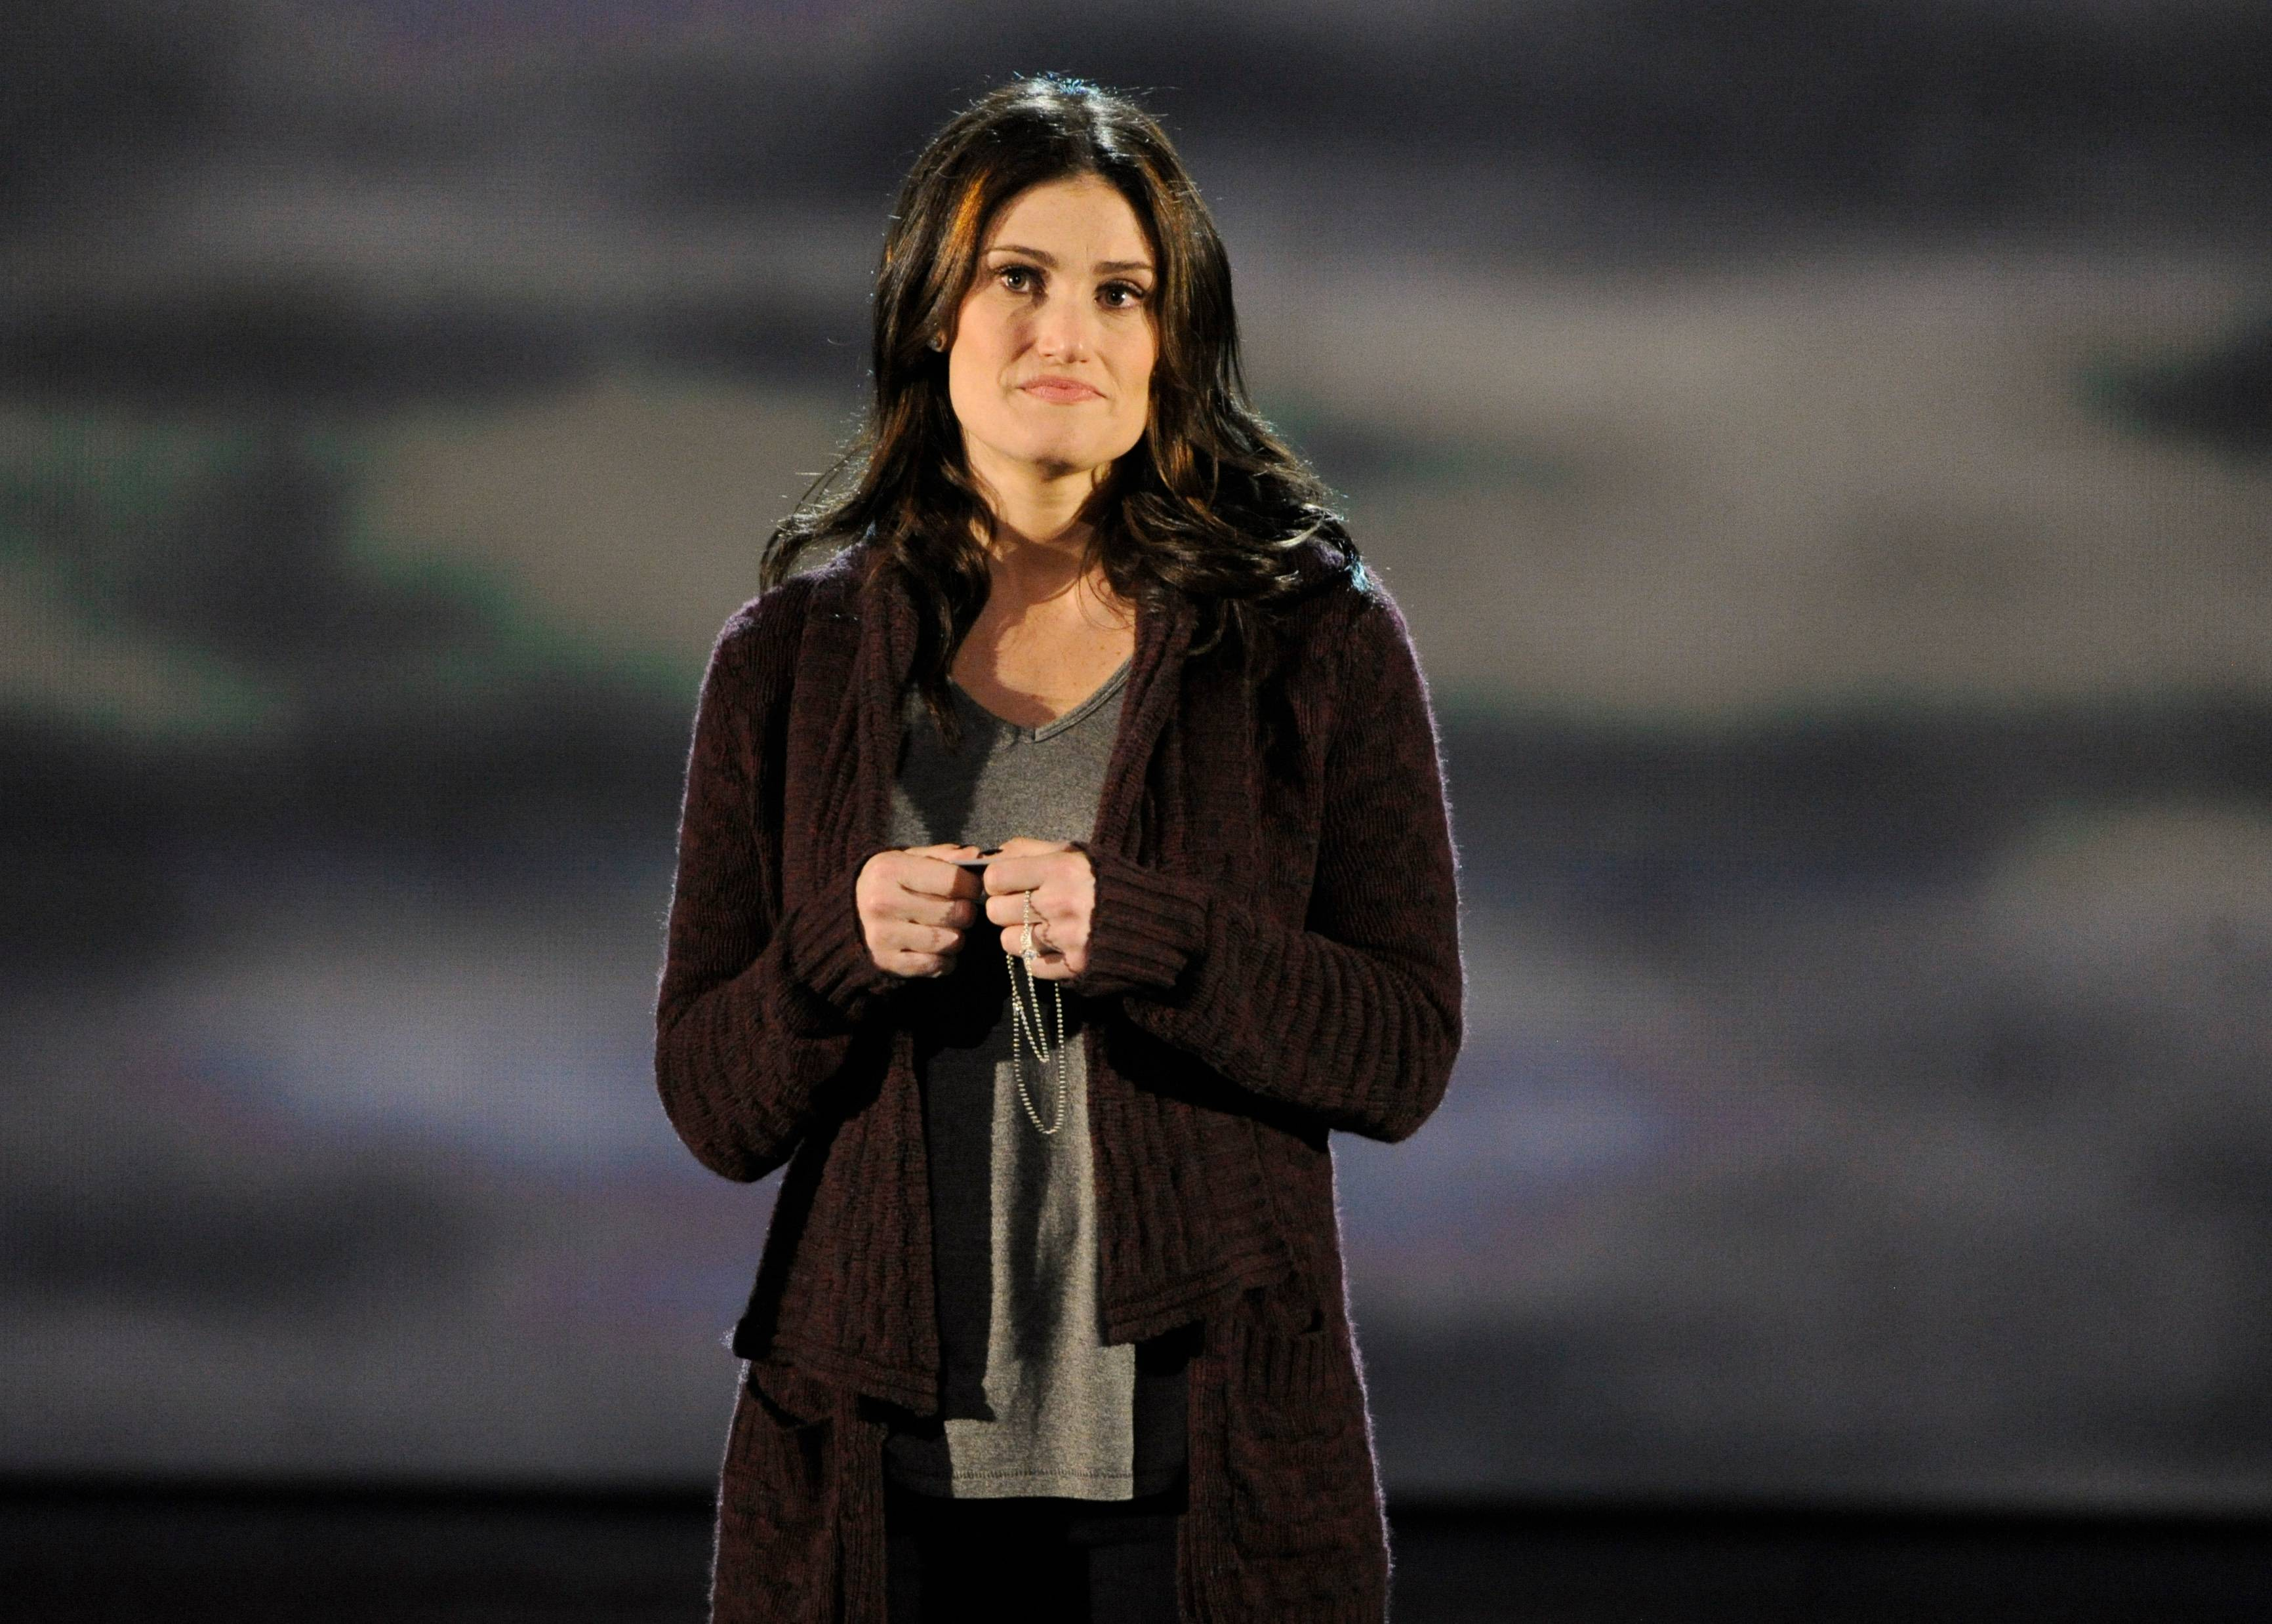 Idina Menzel performs onstage at the 68th annual Tony Awards at Radio City Music Hall on Sunday.